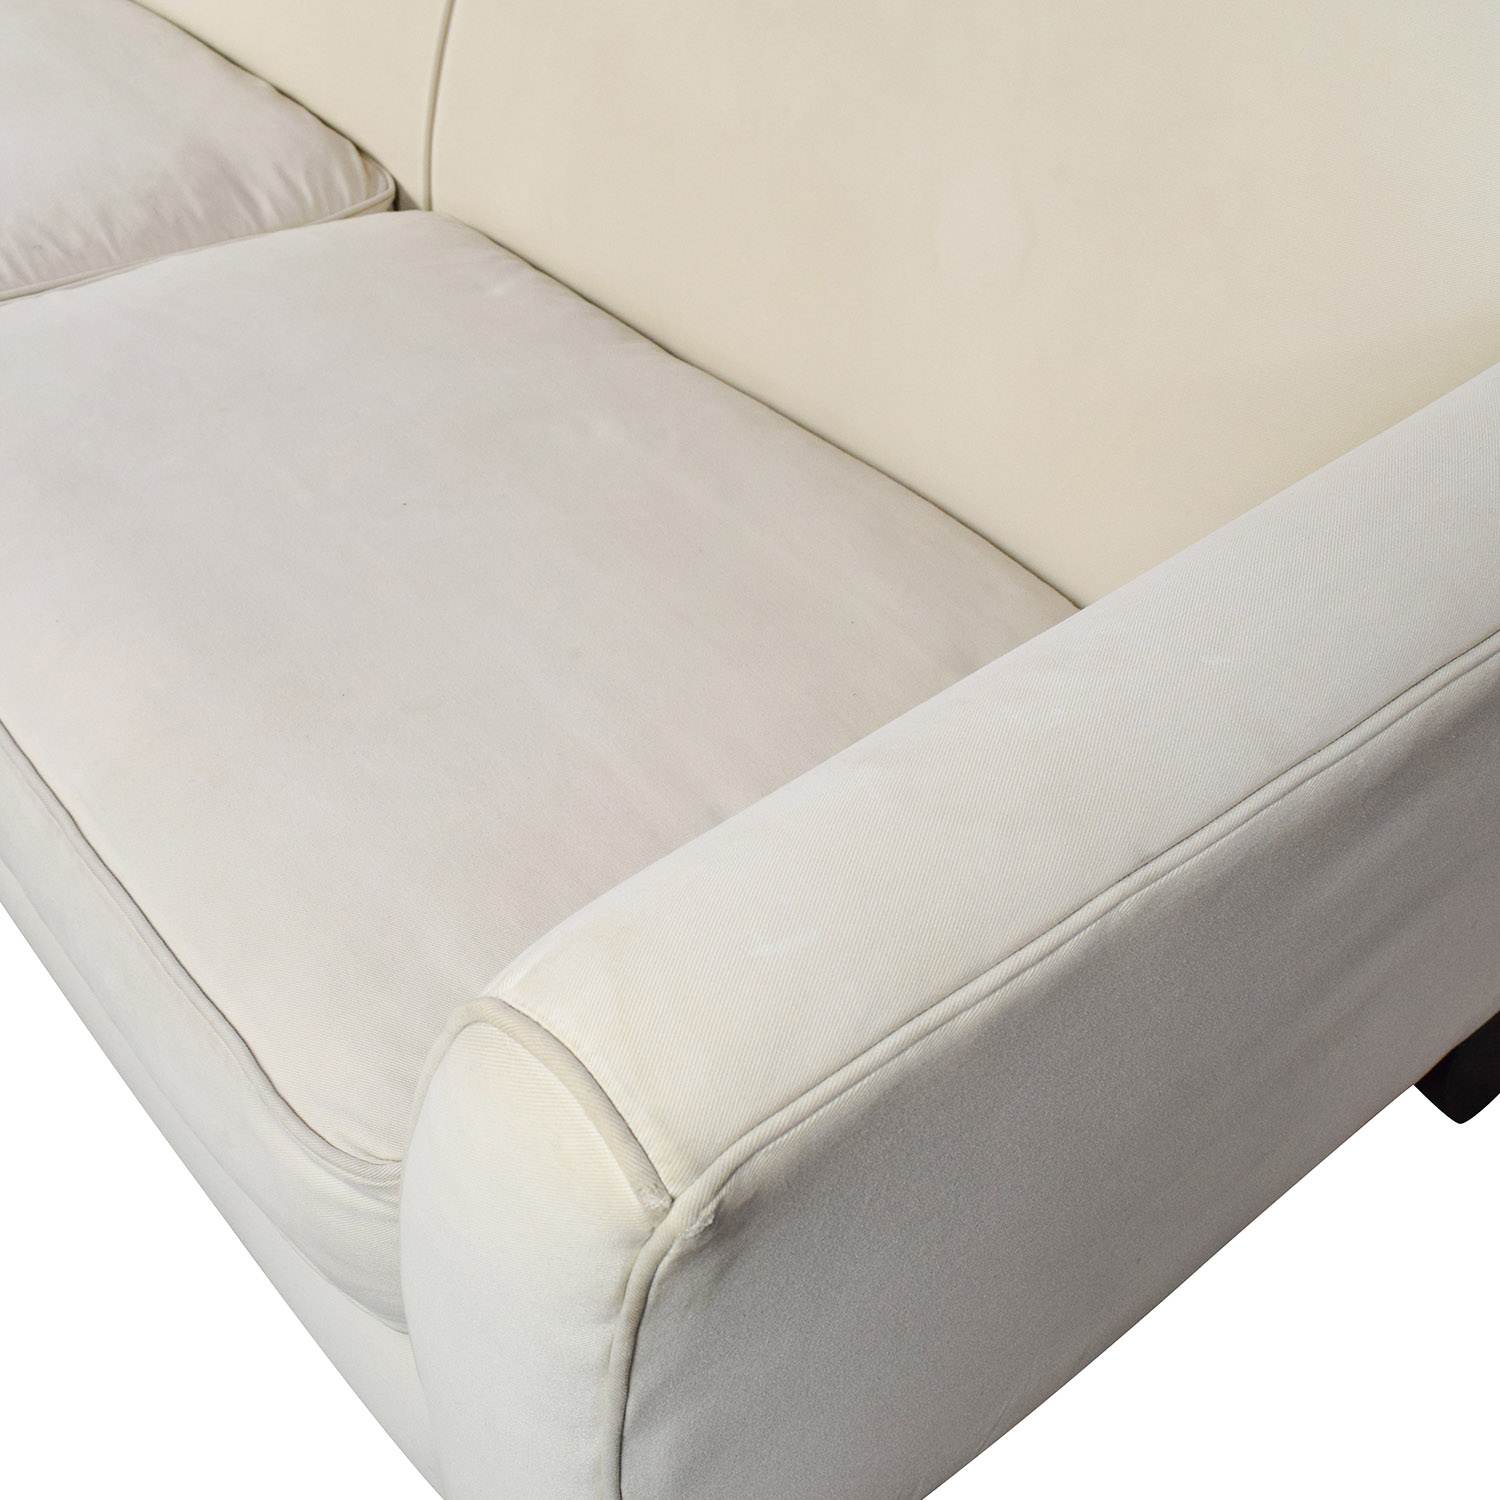 ... Pottery Barn Cream Couch / Sofas; Buy ...